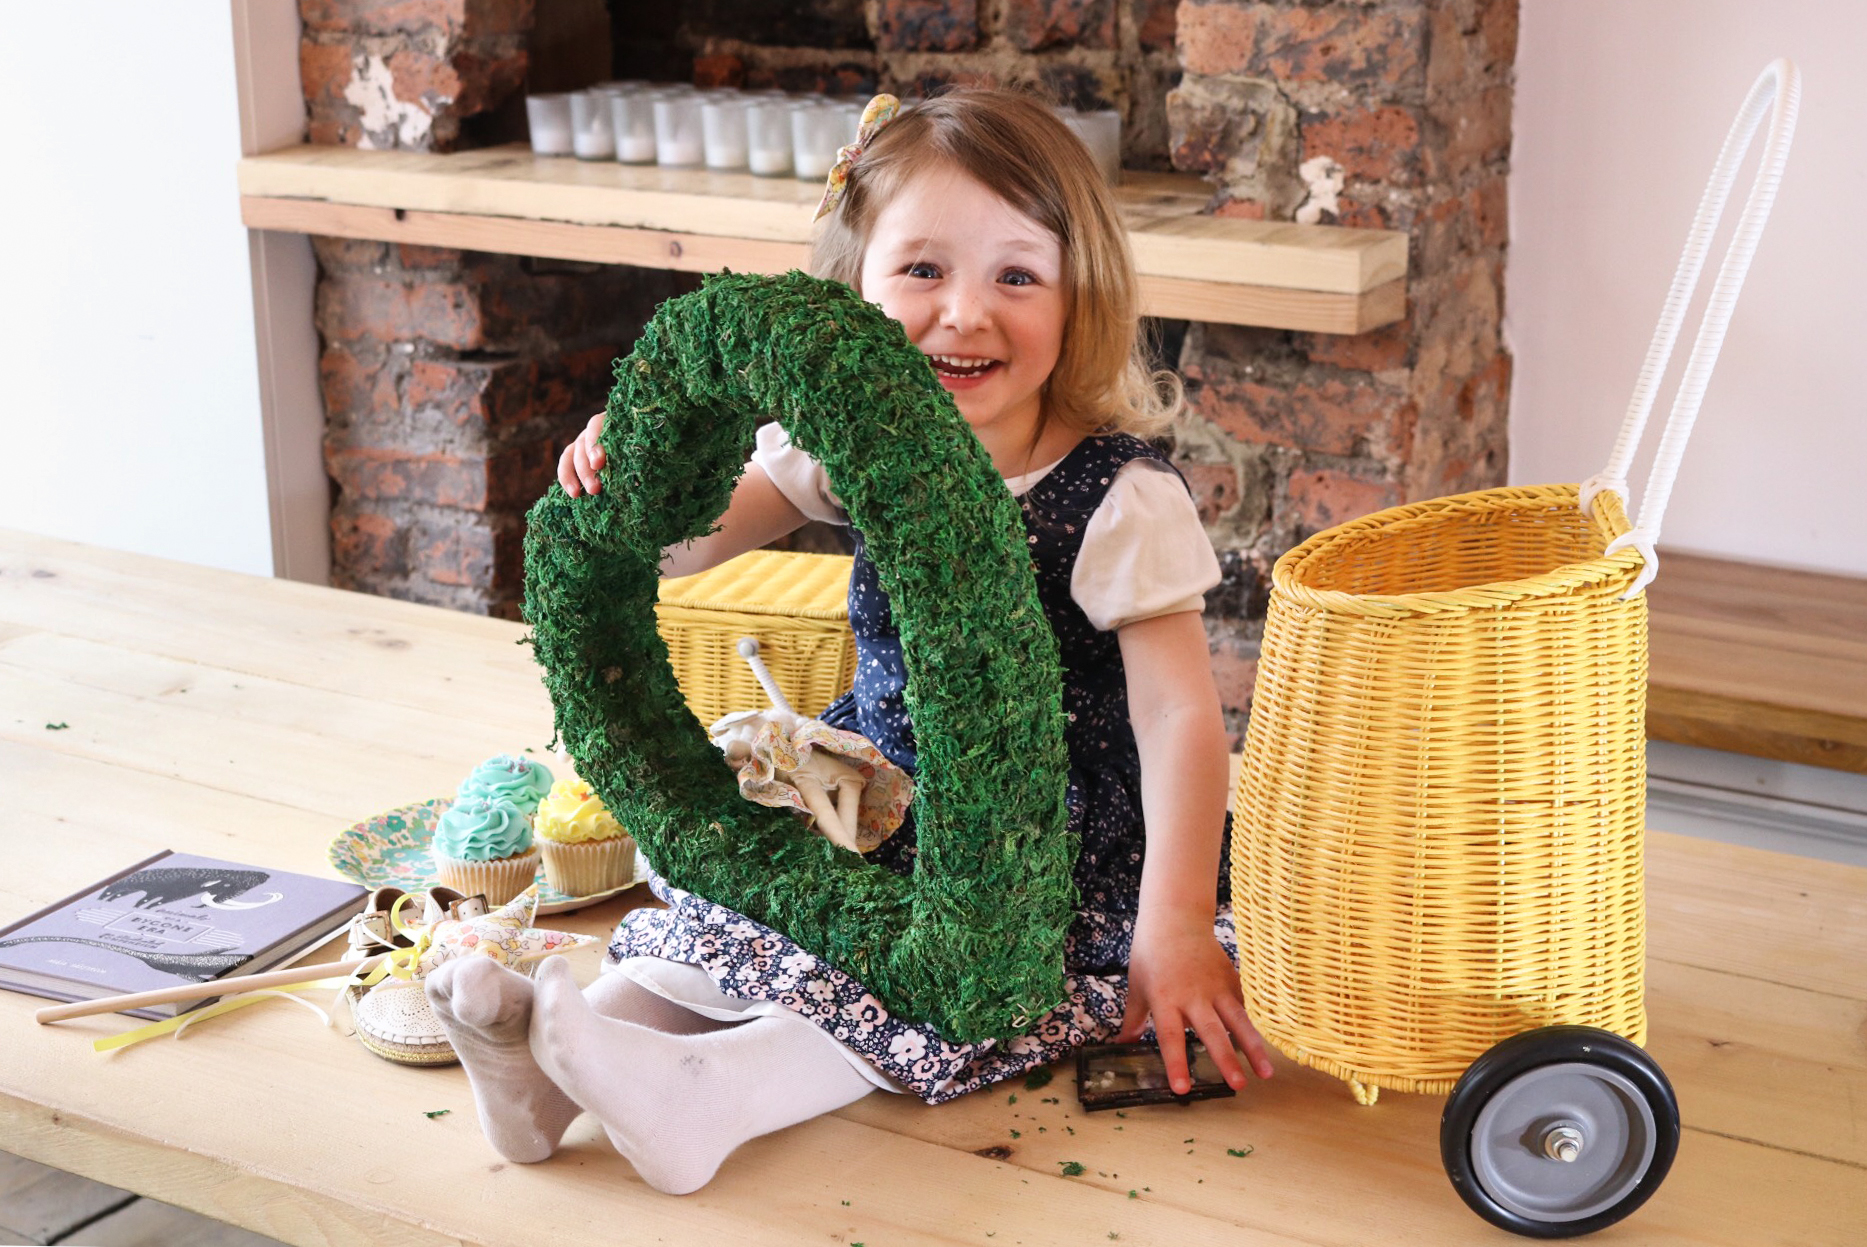 Large moss heart by The Letter Loft, basket by Beyond the Stork, Liberty print wand by Little Red Fox, cakes by Sucre a la Creme bakery